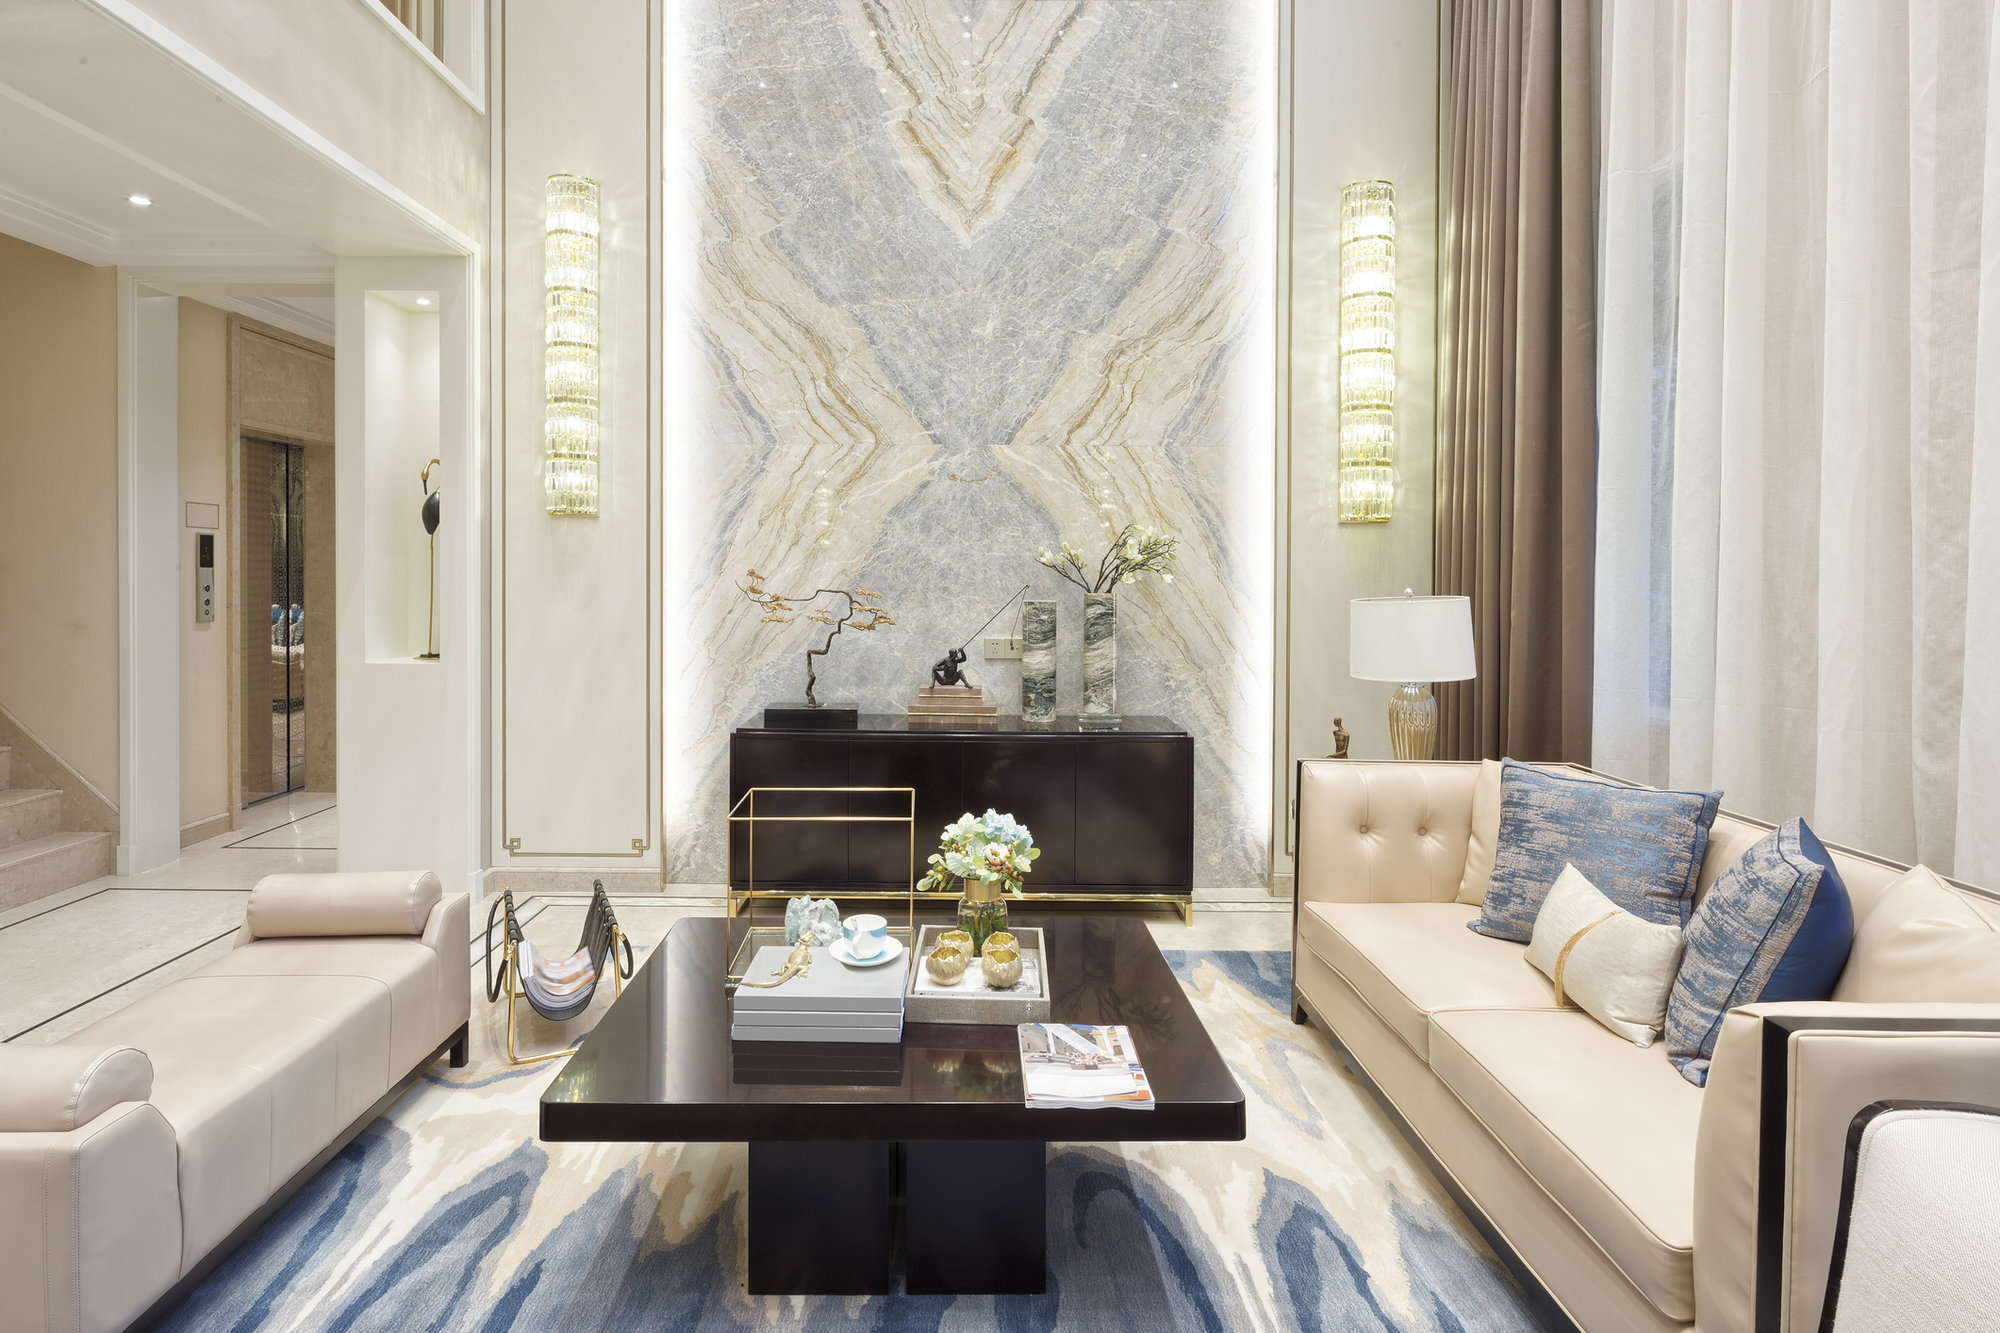 Chicago Luxury Real Estate: Linda Shaughnessy Luxury Agent